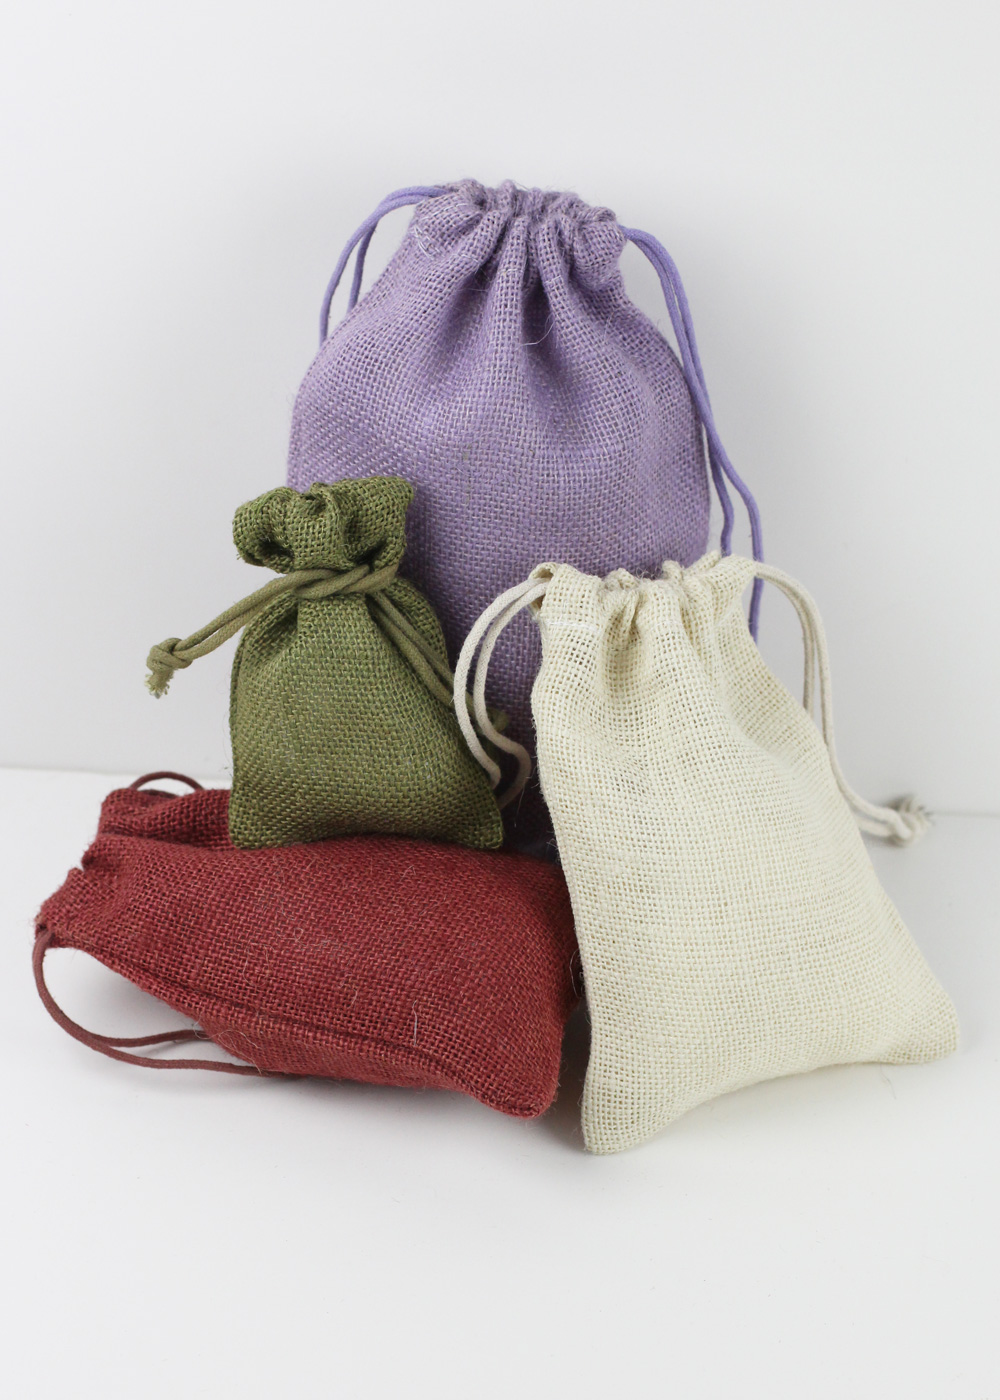 colored jute bags w jute string